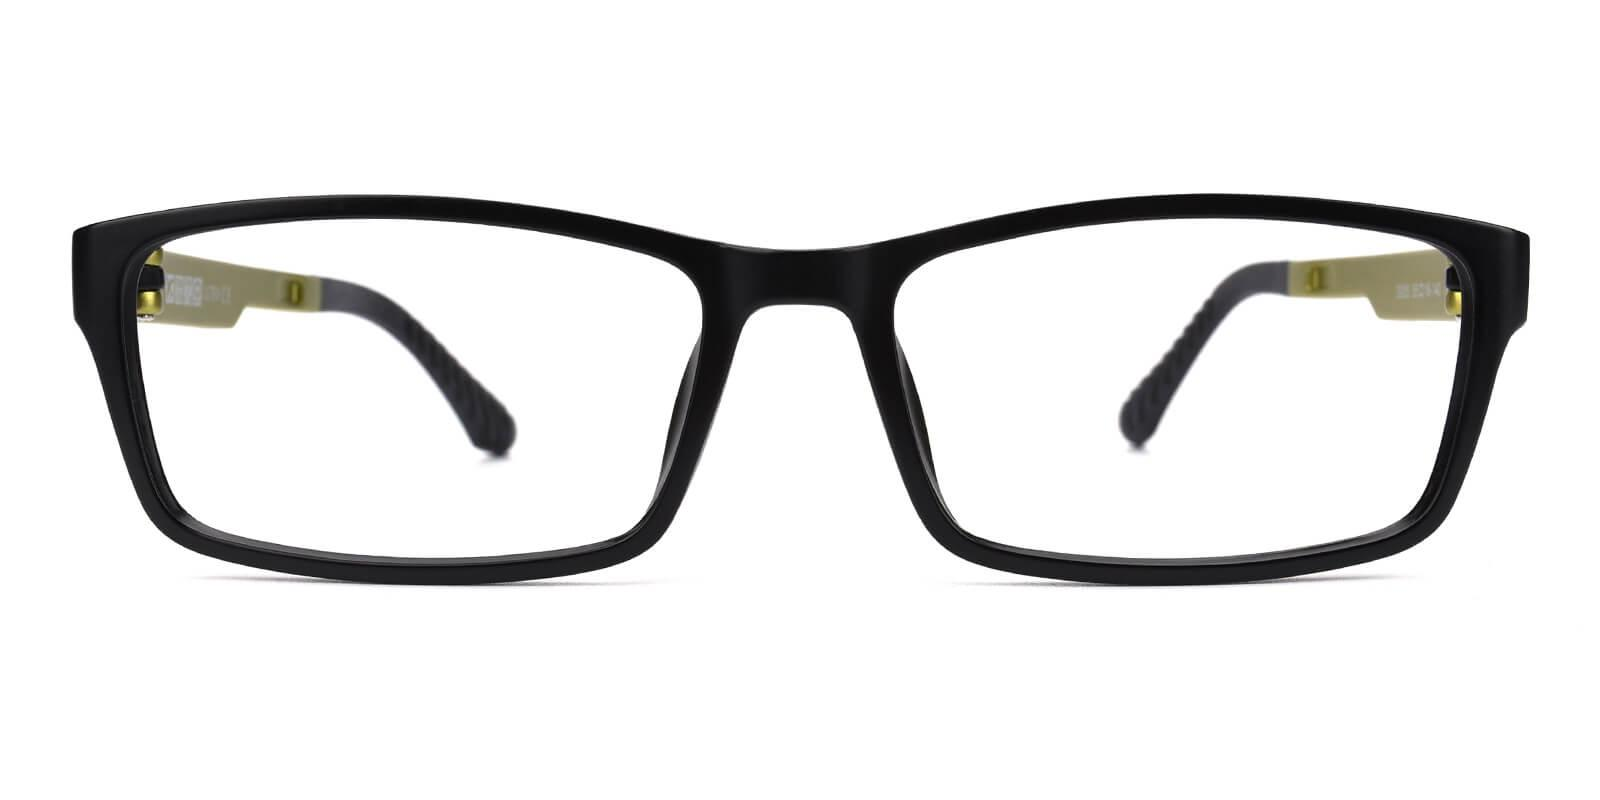 Evidina-Green-Rectangle-Plastic-Eyeglasses-detail